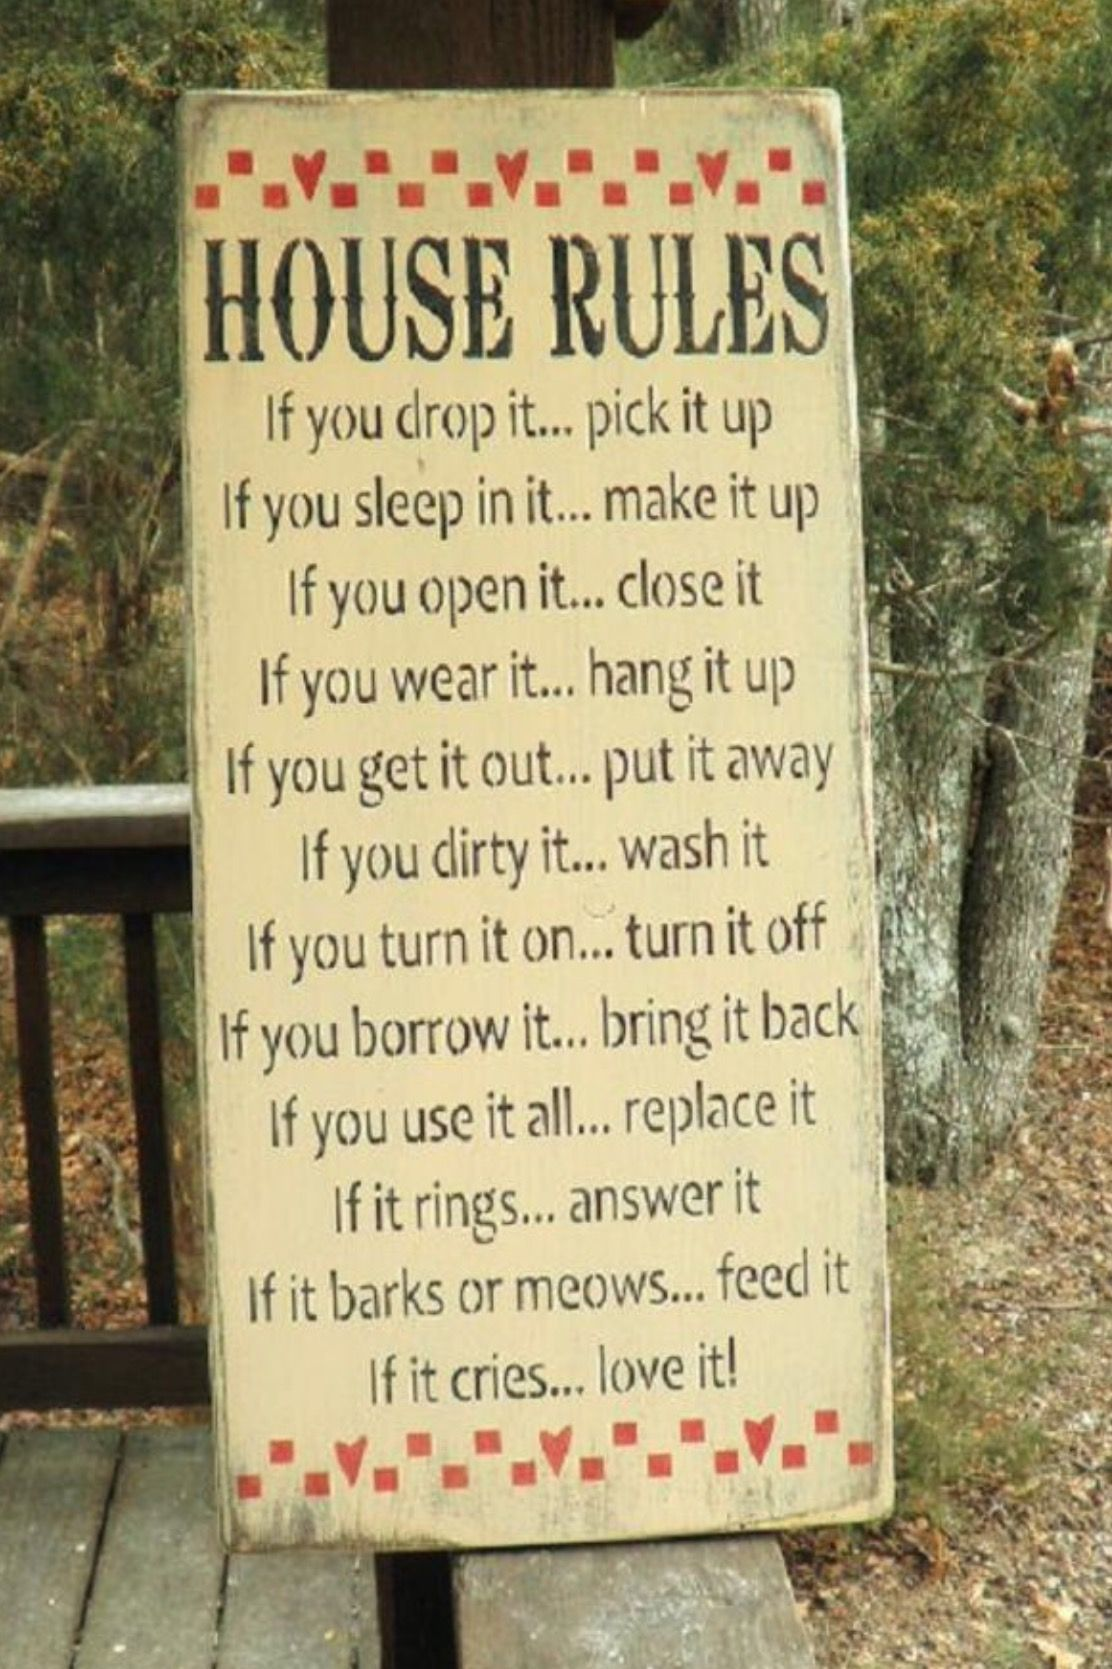 Pin by Carol Myers on Home sweet home | Pinterest | House rules ...